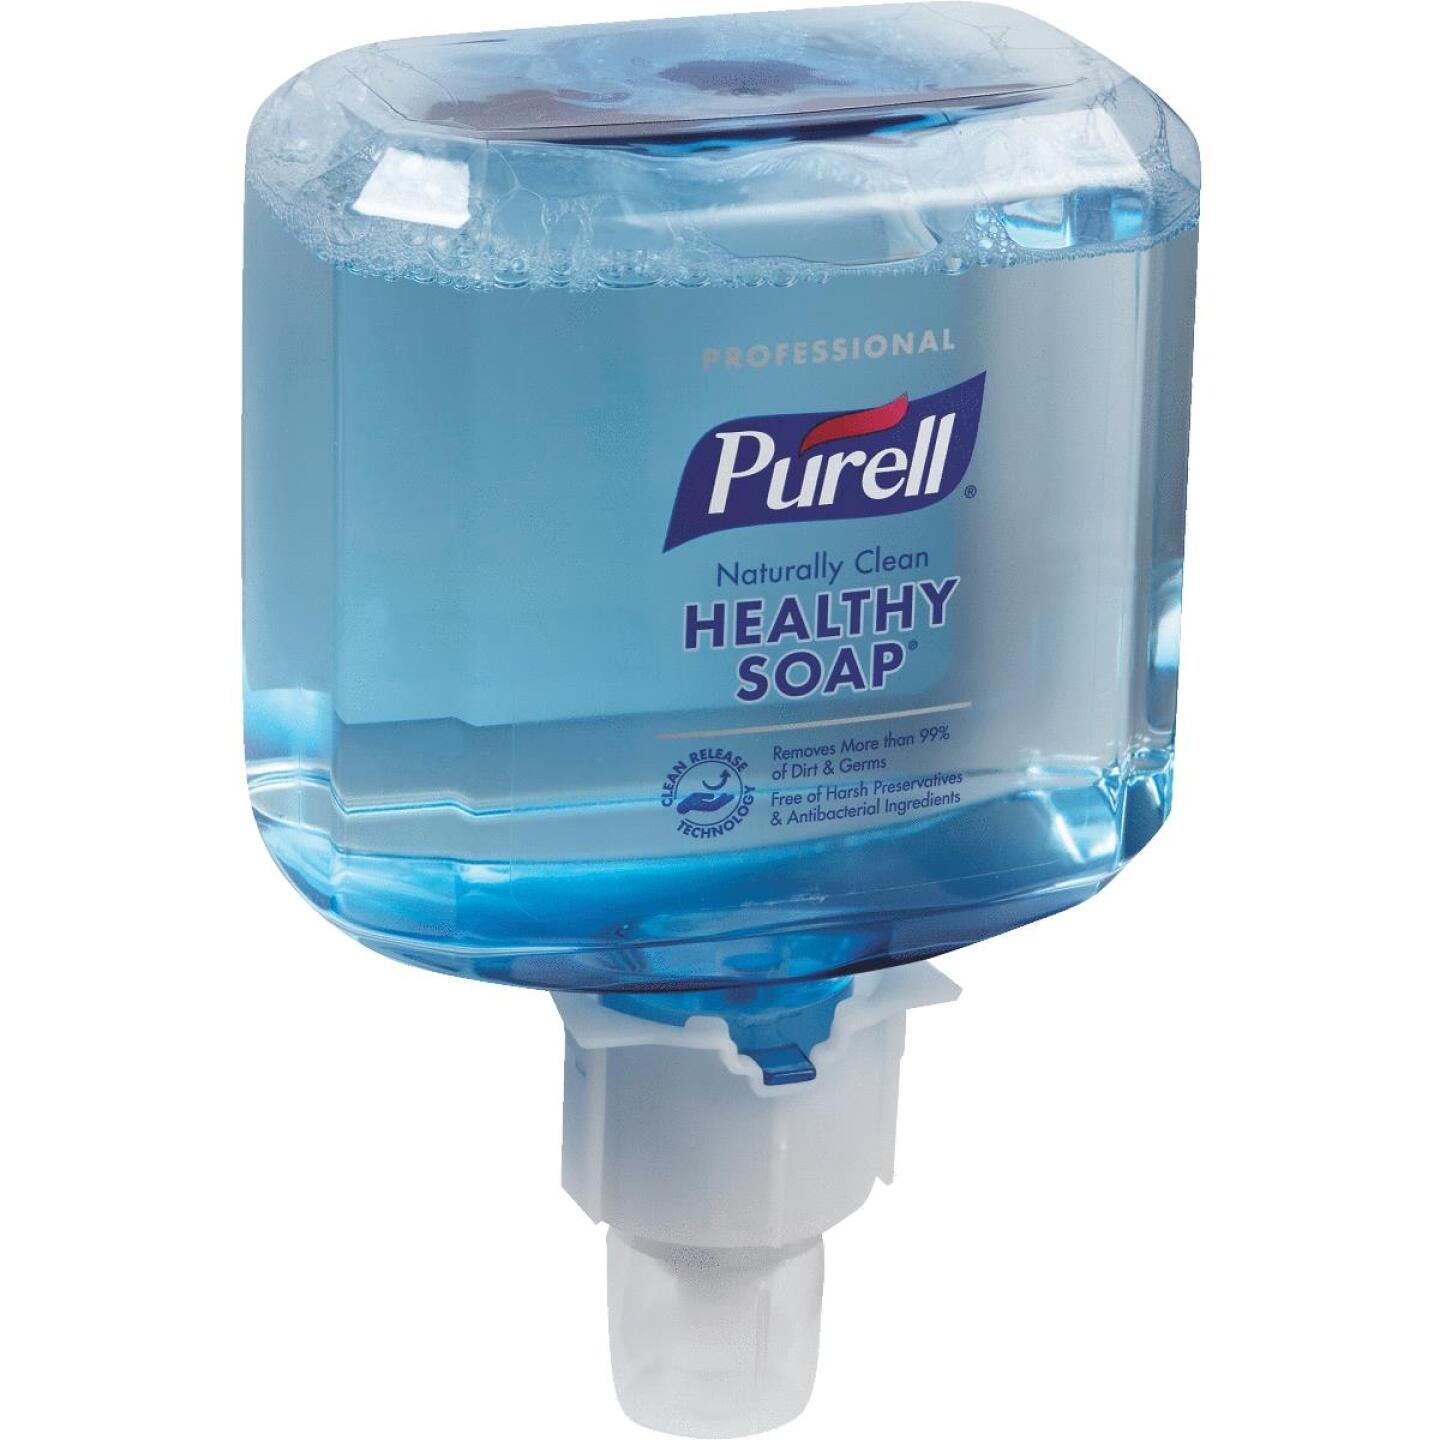 Purell ES4 1200mL Professional CRT Healthy Soap Naturally Clean Foam Refill Image 1